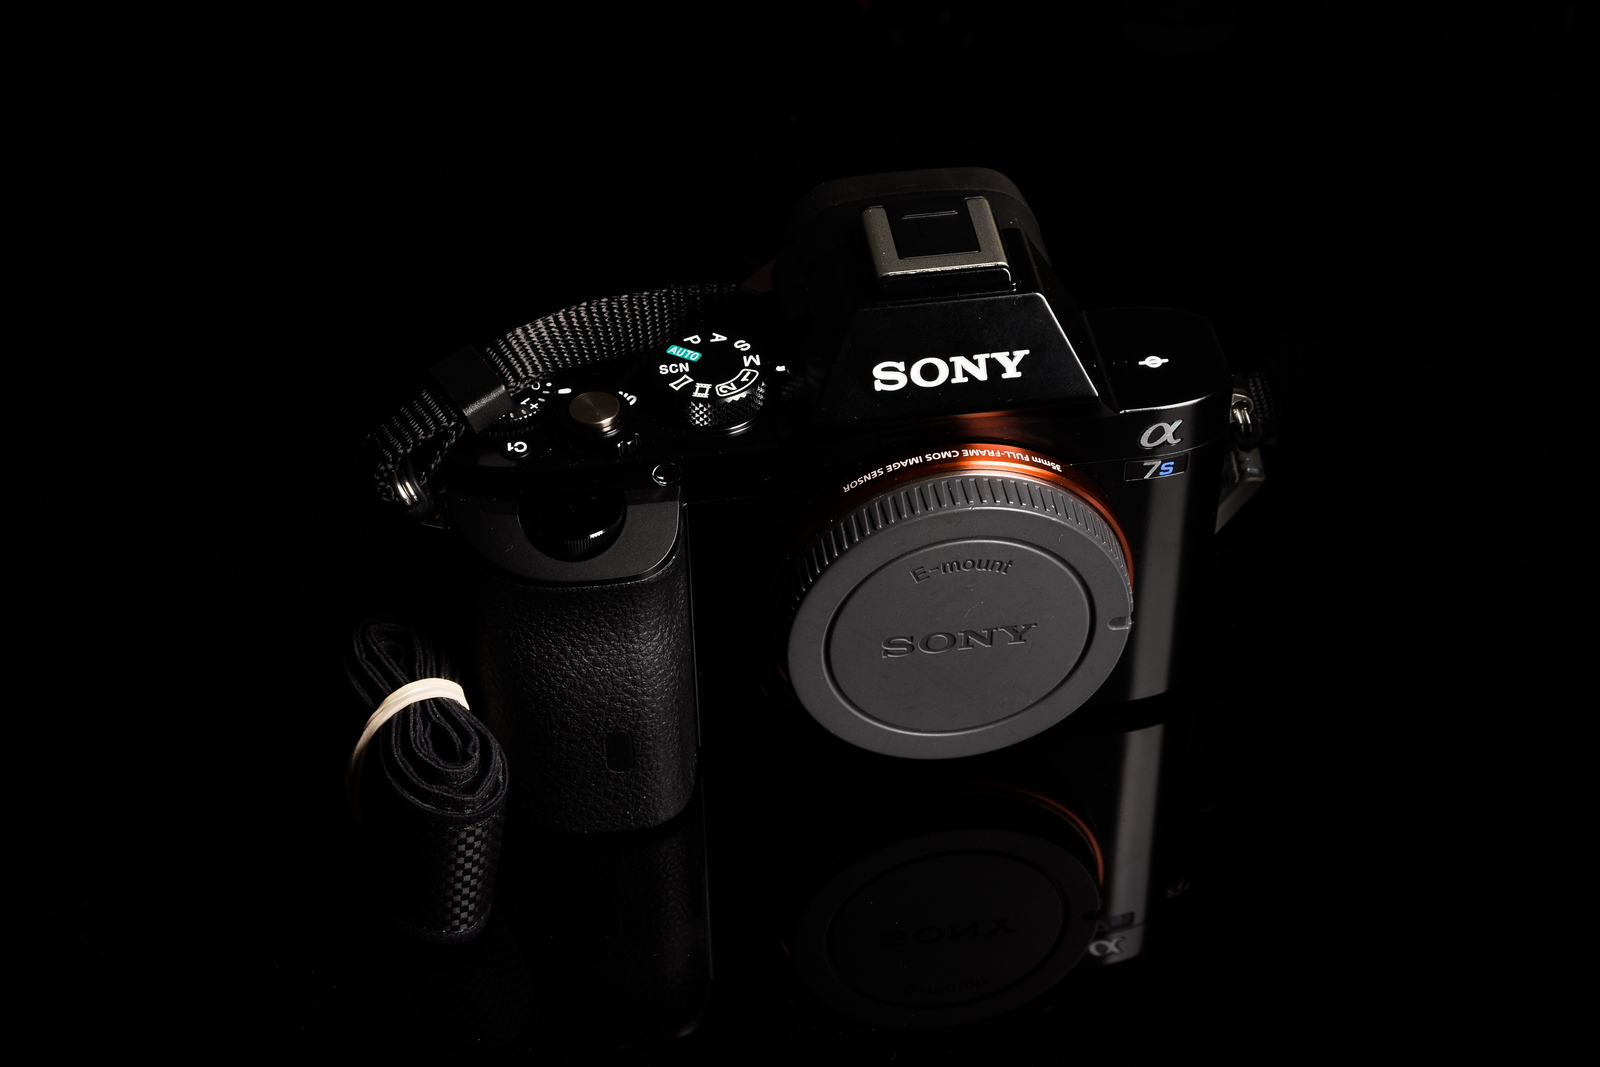 Choosing the Best Memory Cards for the Sony A7ii, A7r, A7s